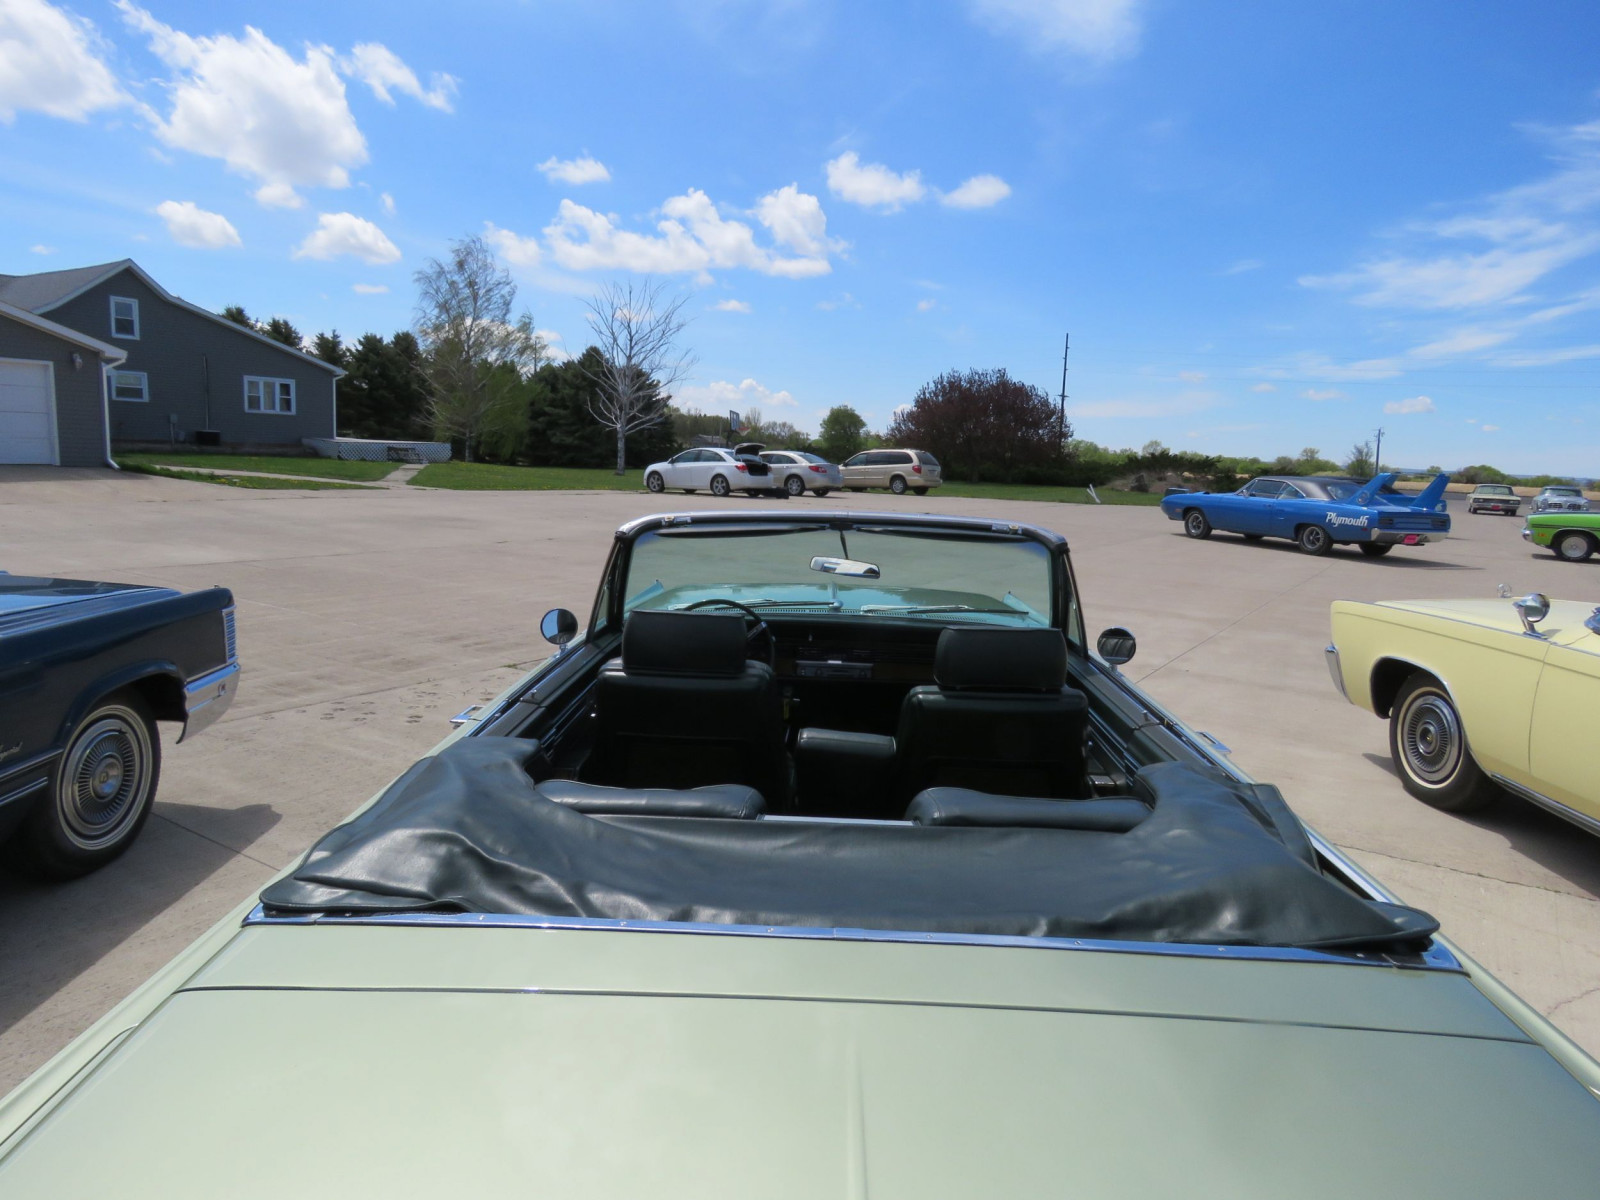 1968 Chrysler Imperial Crown Convertible - Image 15